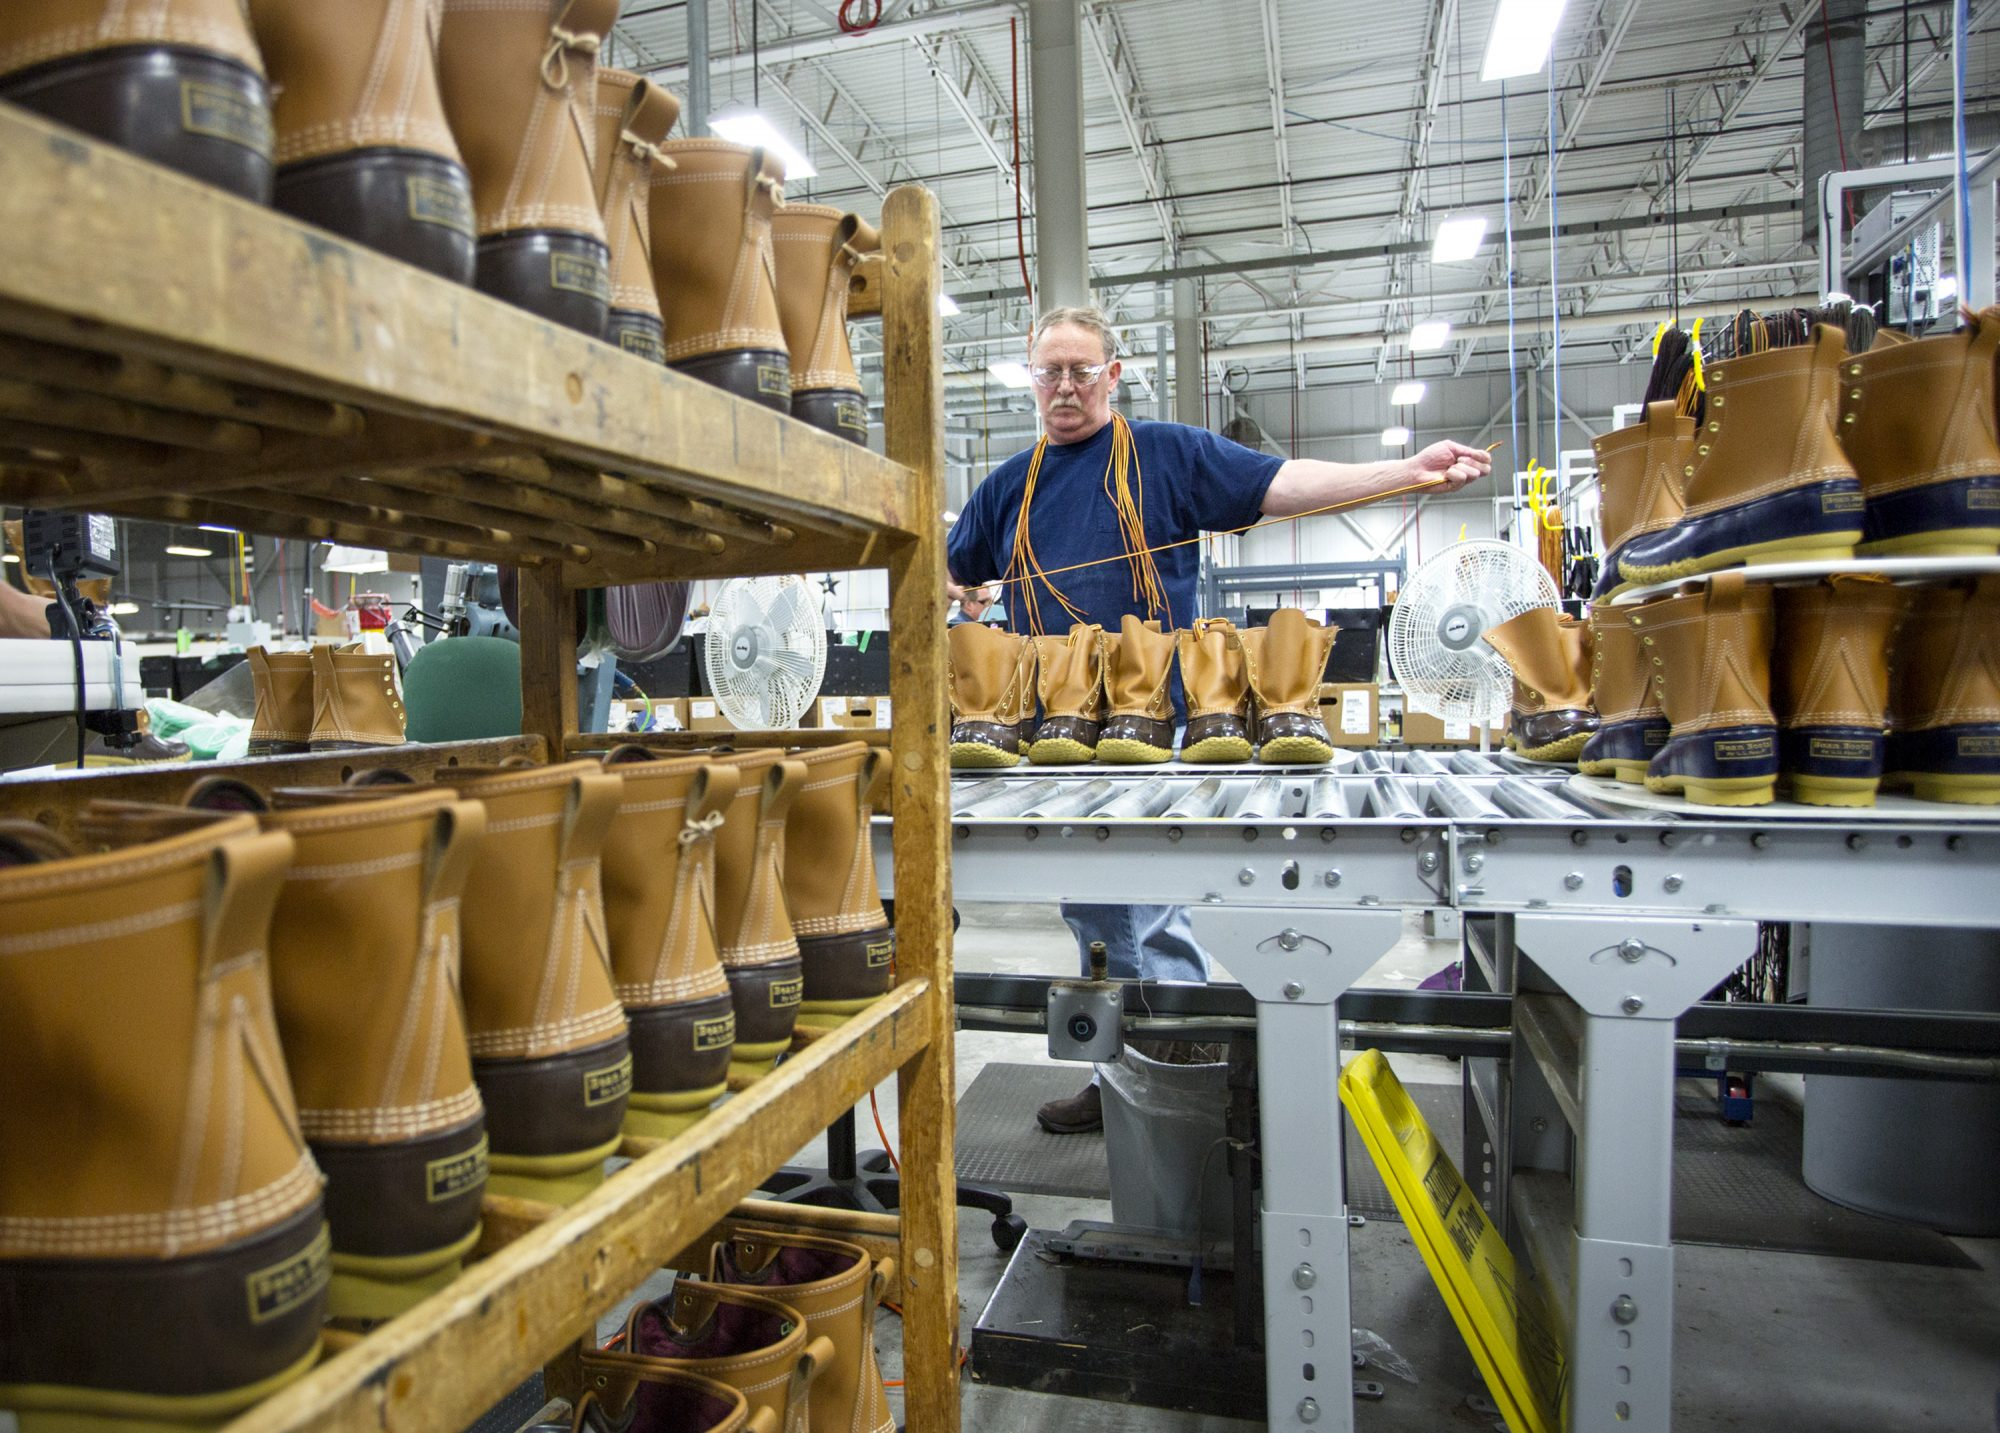 L.L. Bean boot manufacturing